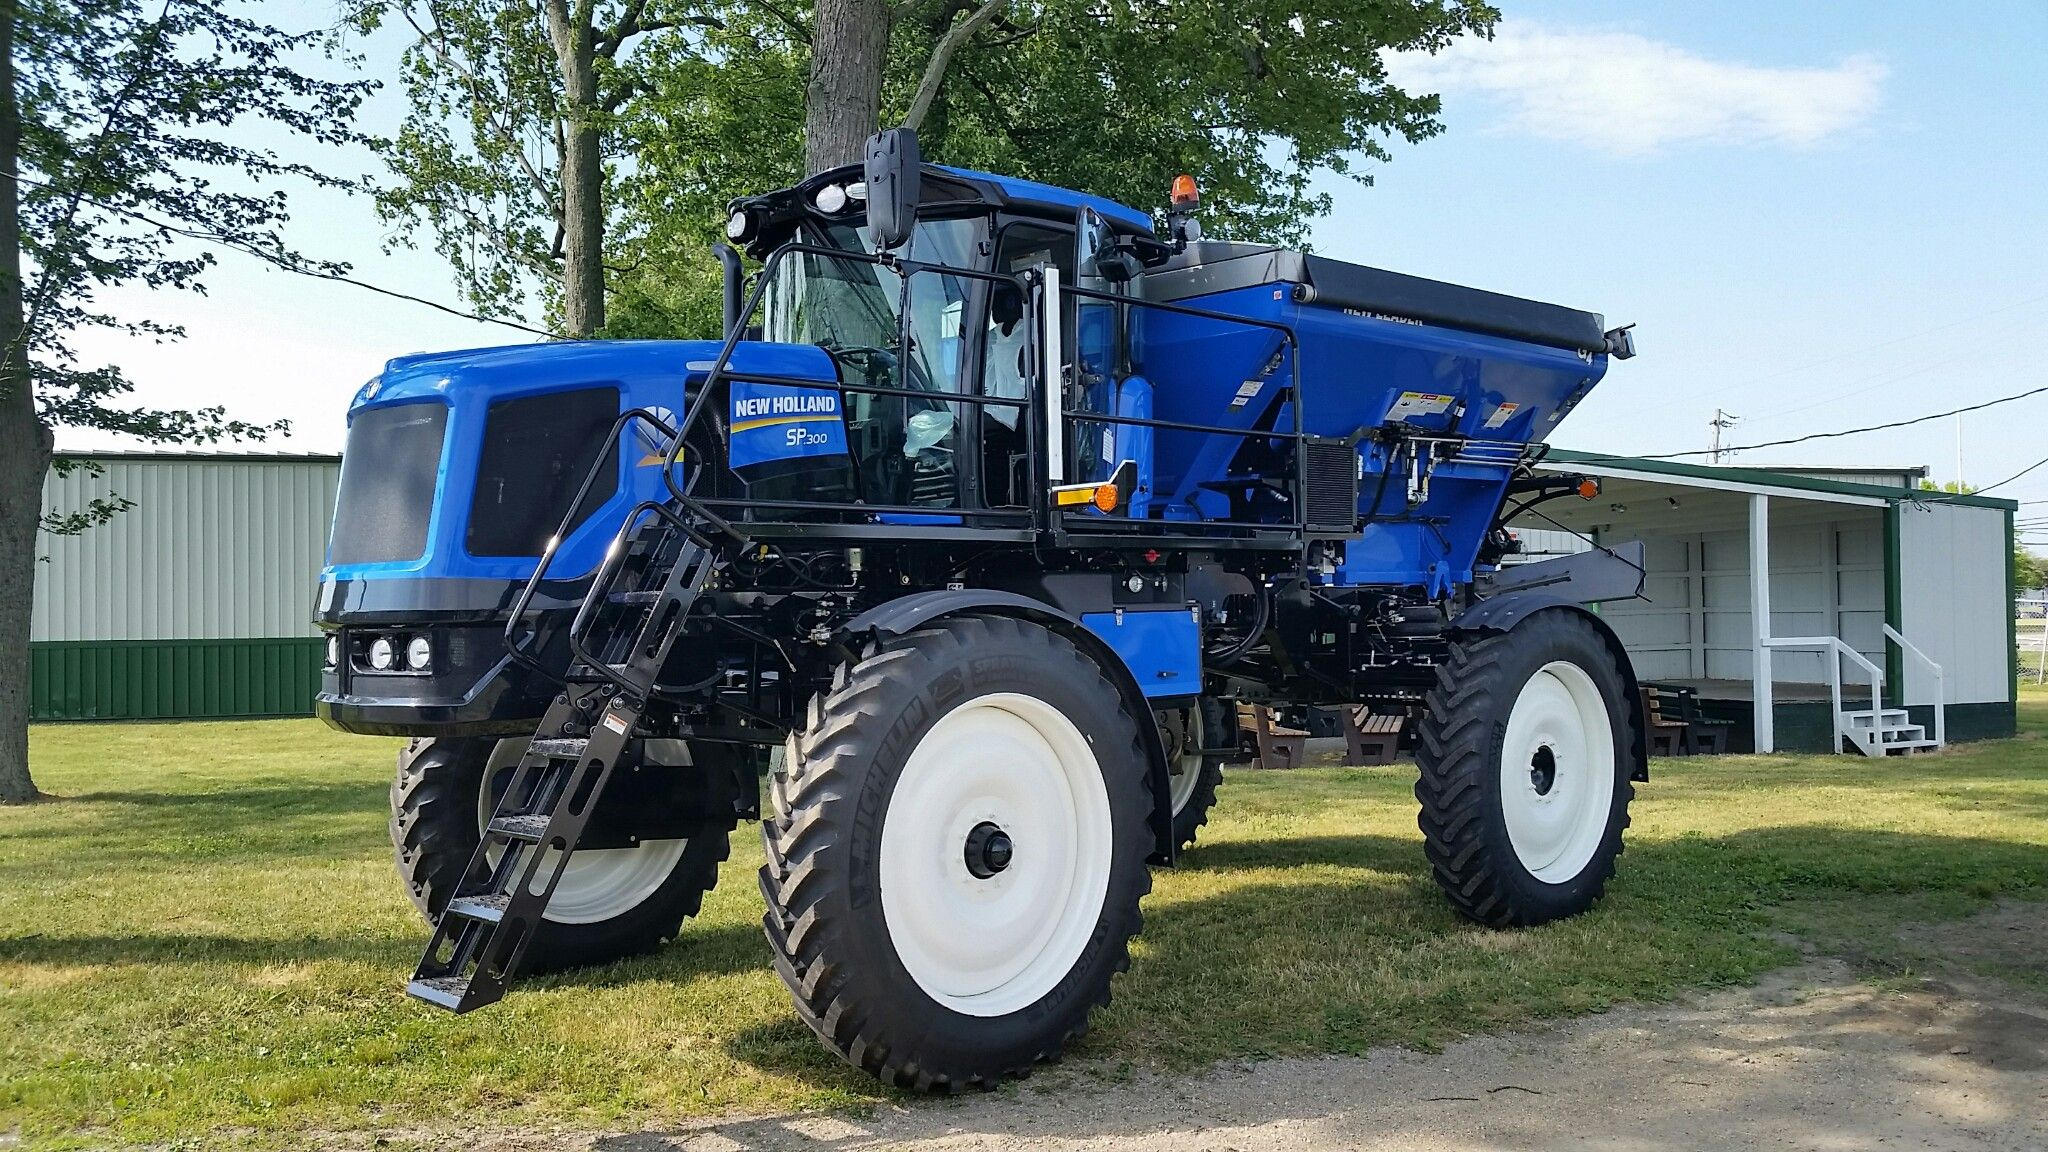 New Holland Launches Guardian My2016 Series Rear Boom Sprayers New Holland New Holland Agriculture New Holland Ford